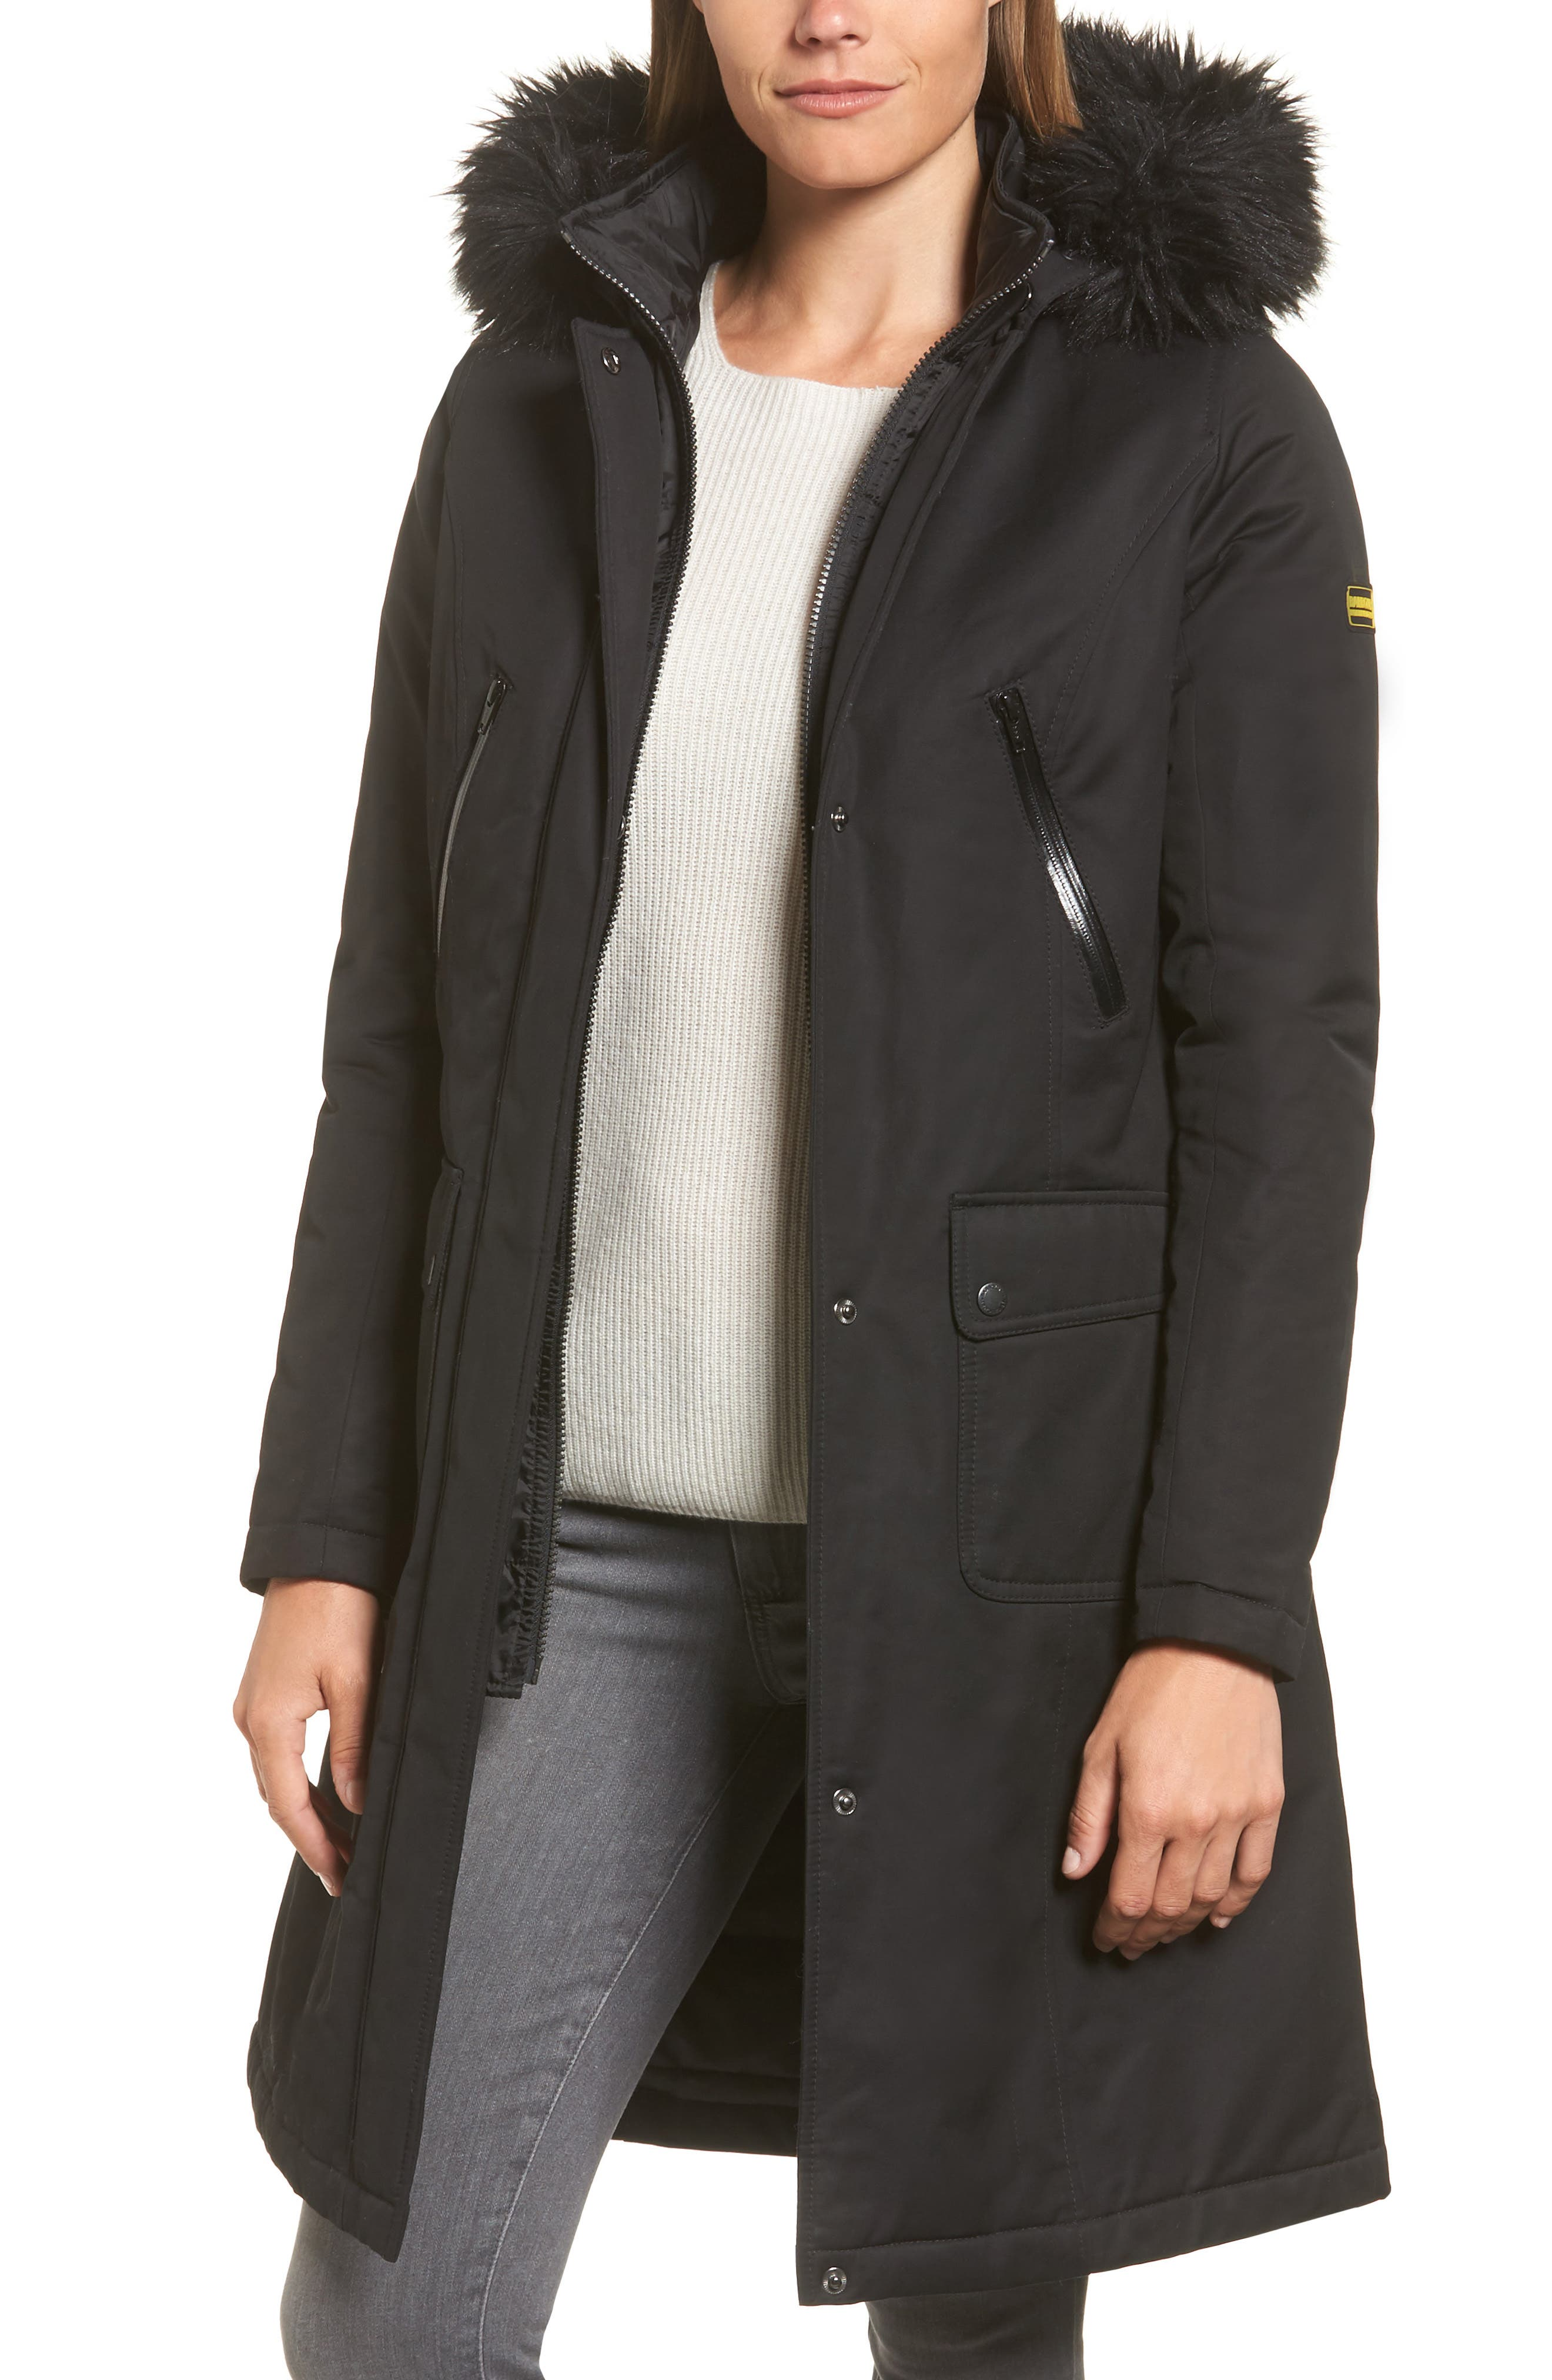 Alternate Image 1 Selected - Barbour Mondello Hooded Water Resistant Jacket with Faux Fur Trim